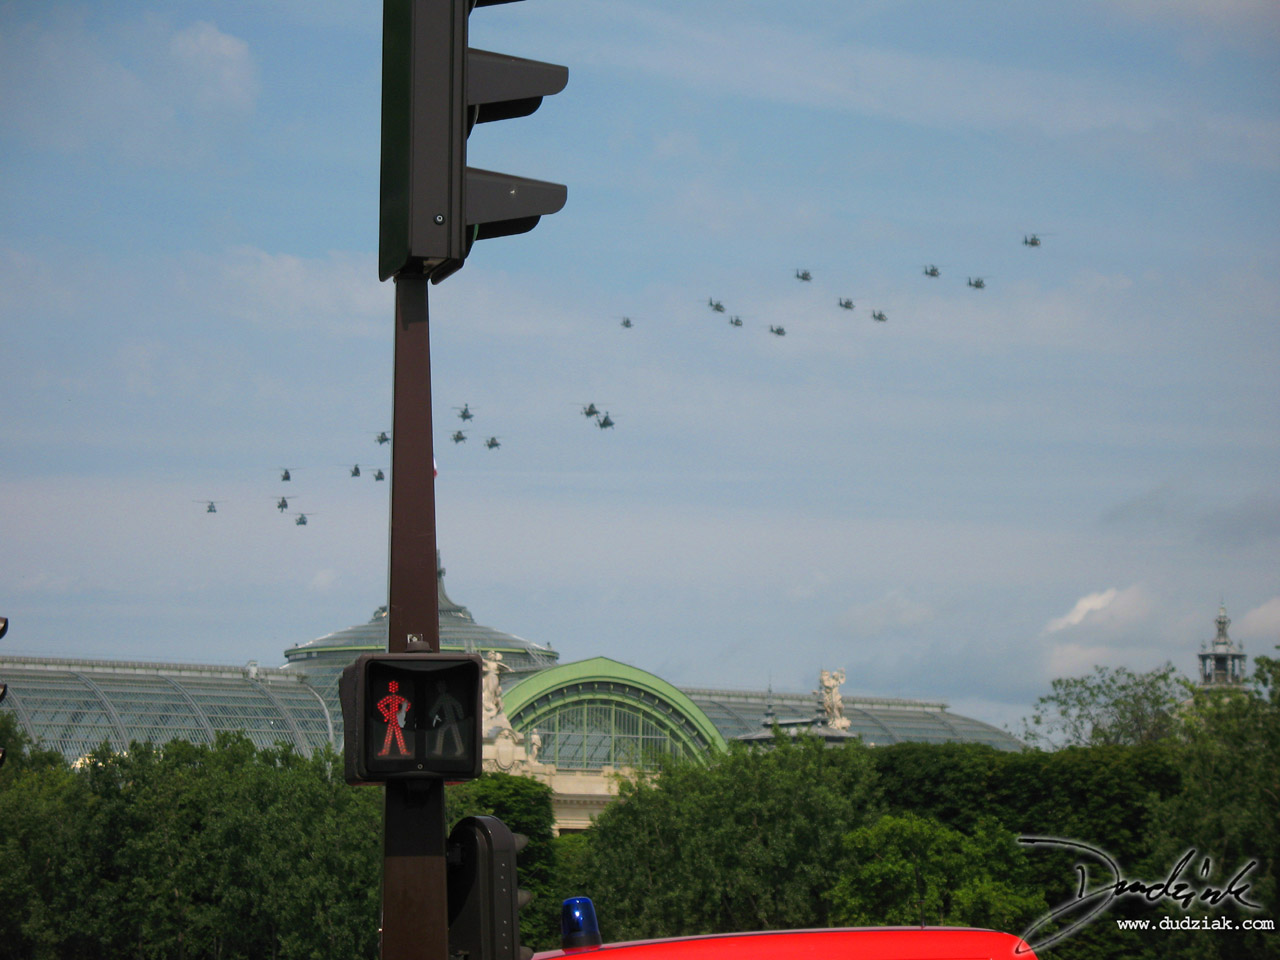 Quatorze Juillet,  Paris,  Helicopters,  Bastille Day,  France,  french air force